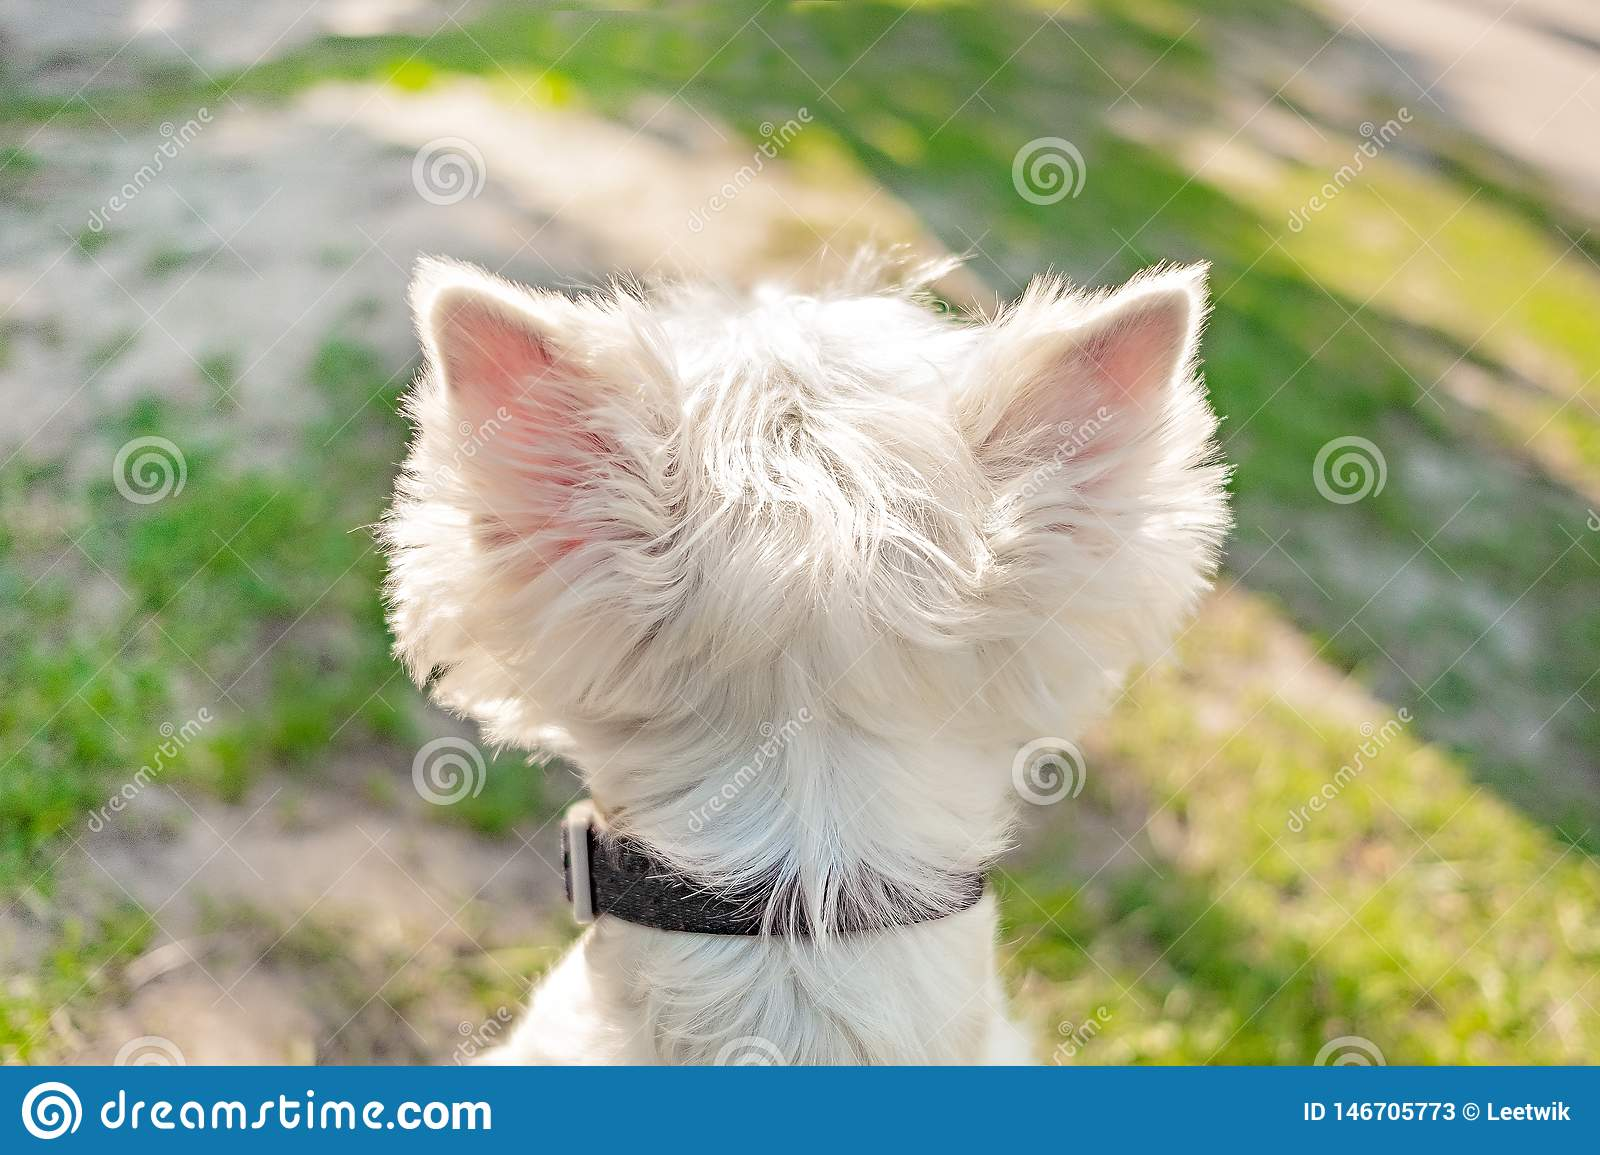 Head of a white fluffy dog with large triangular protruding ears